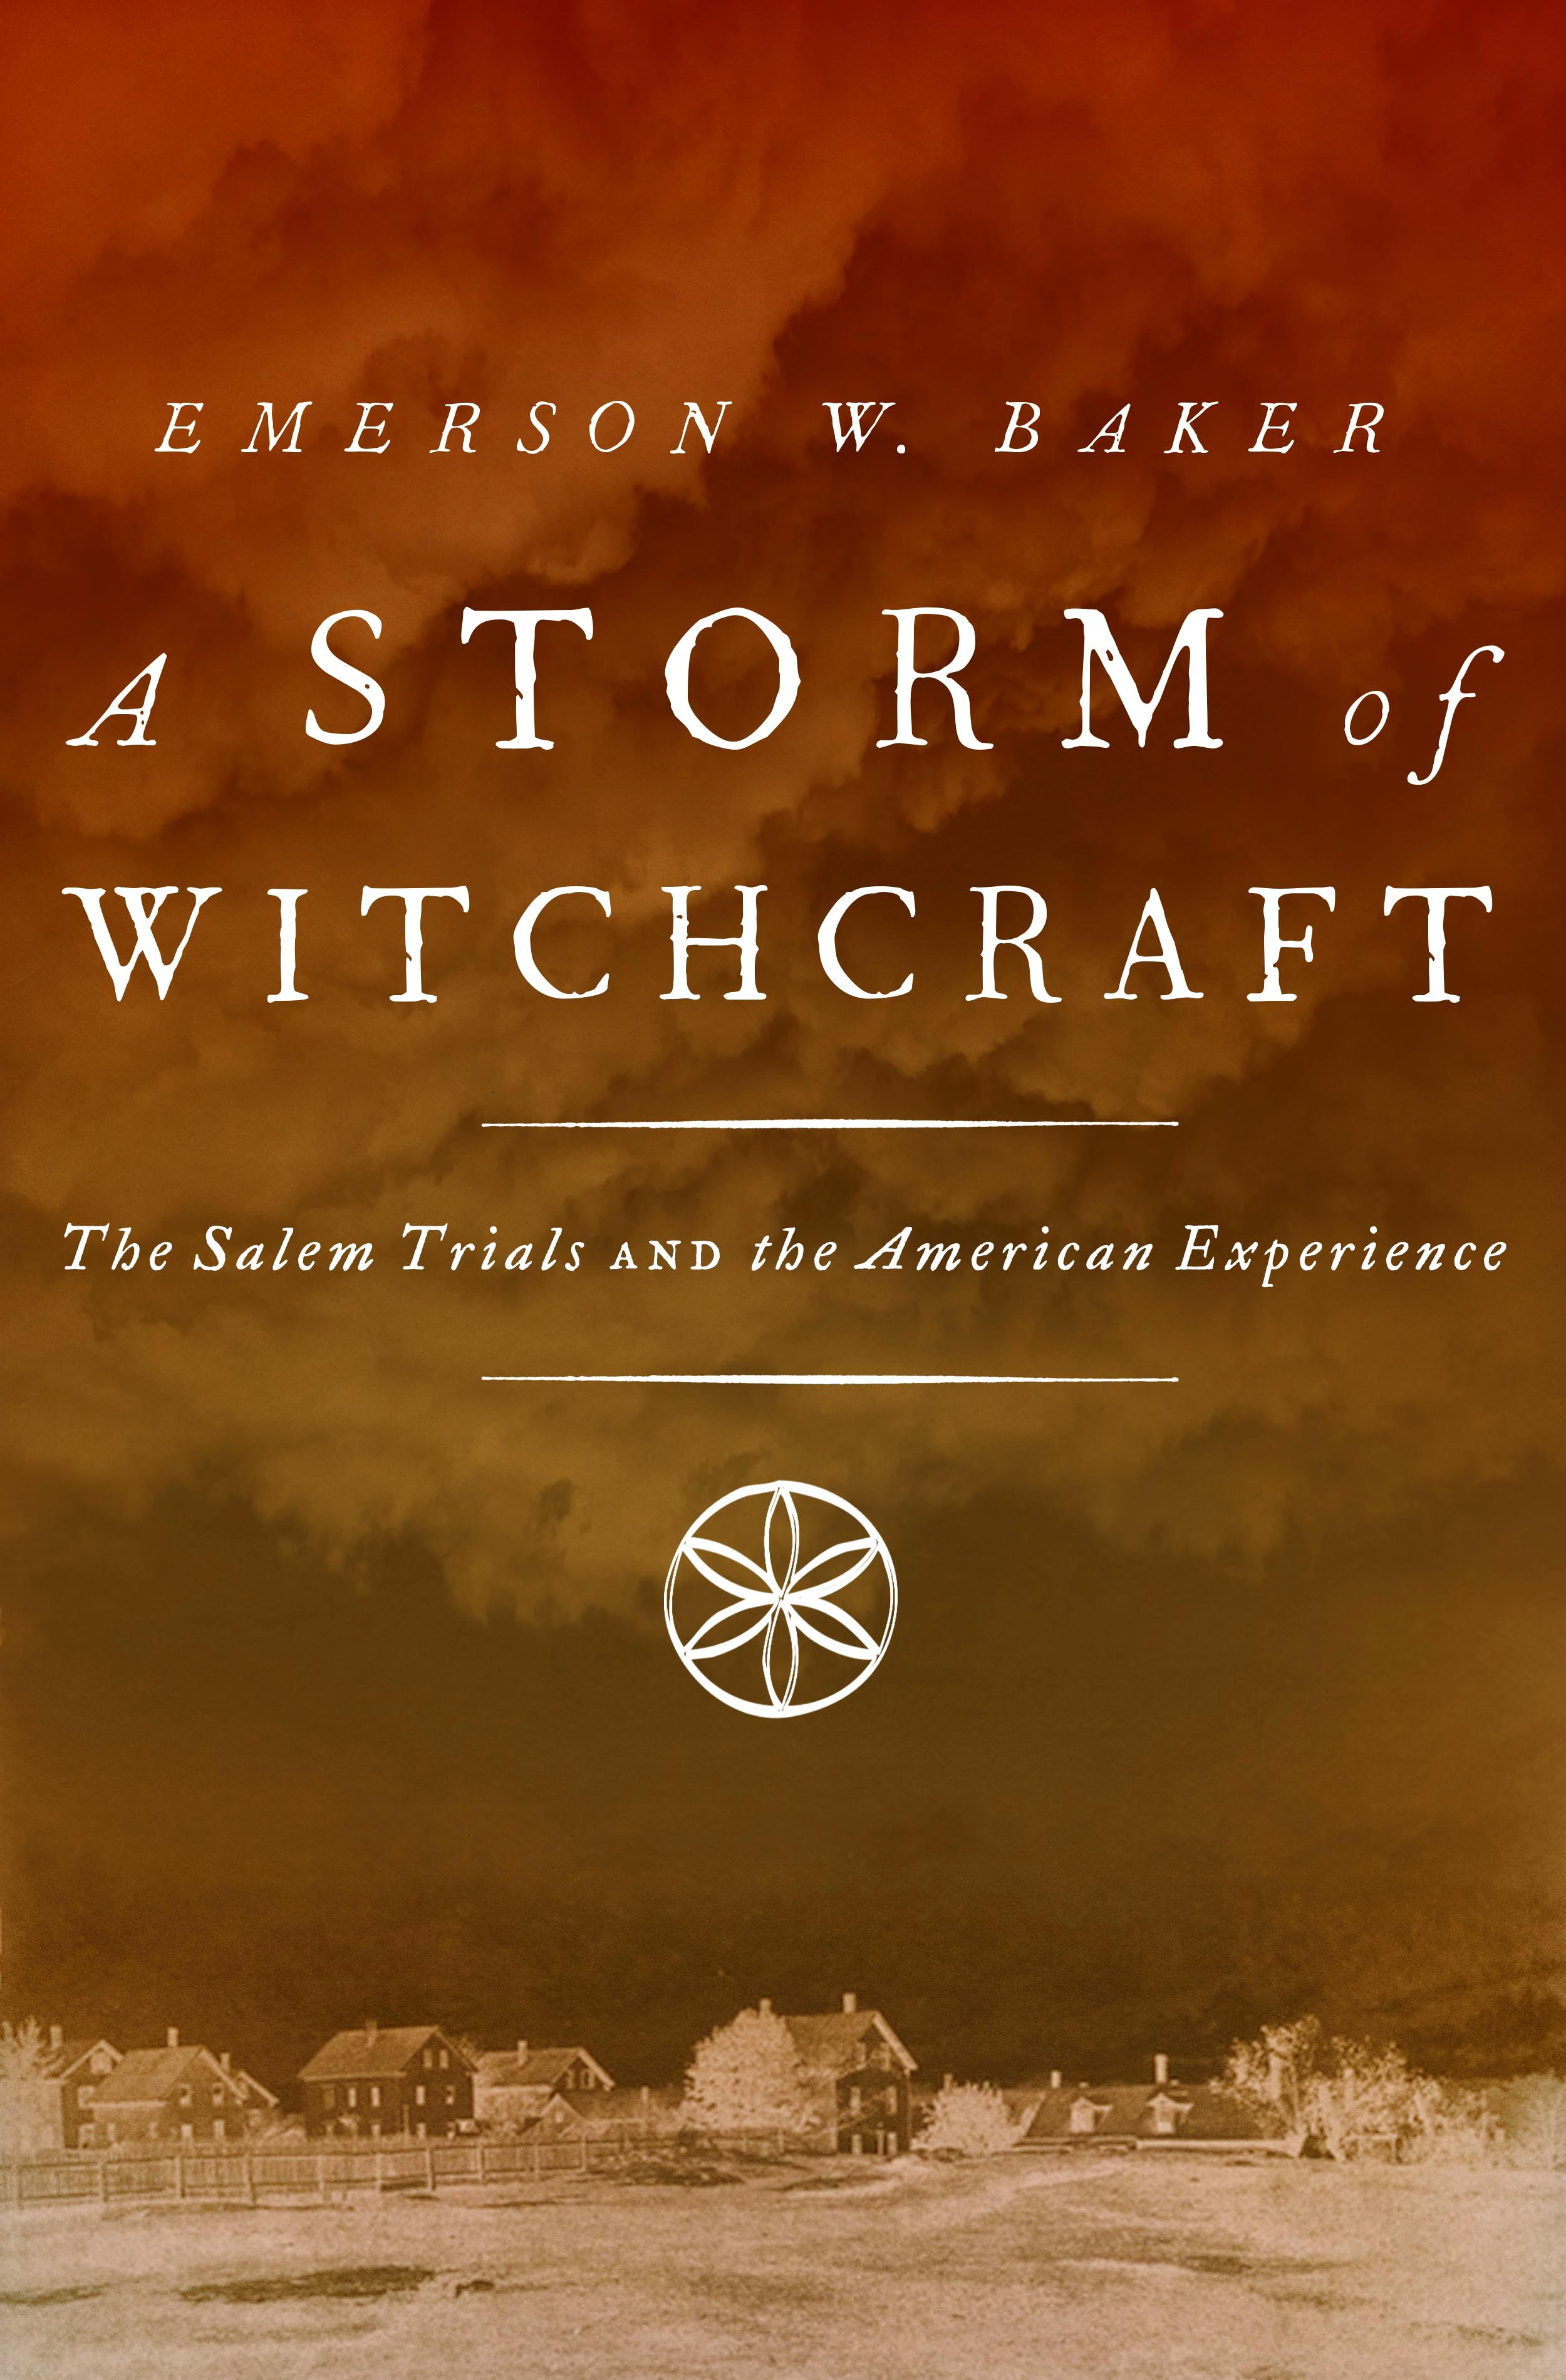 Baker_Storm_of_Witchcraft.jpg